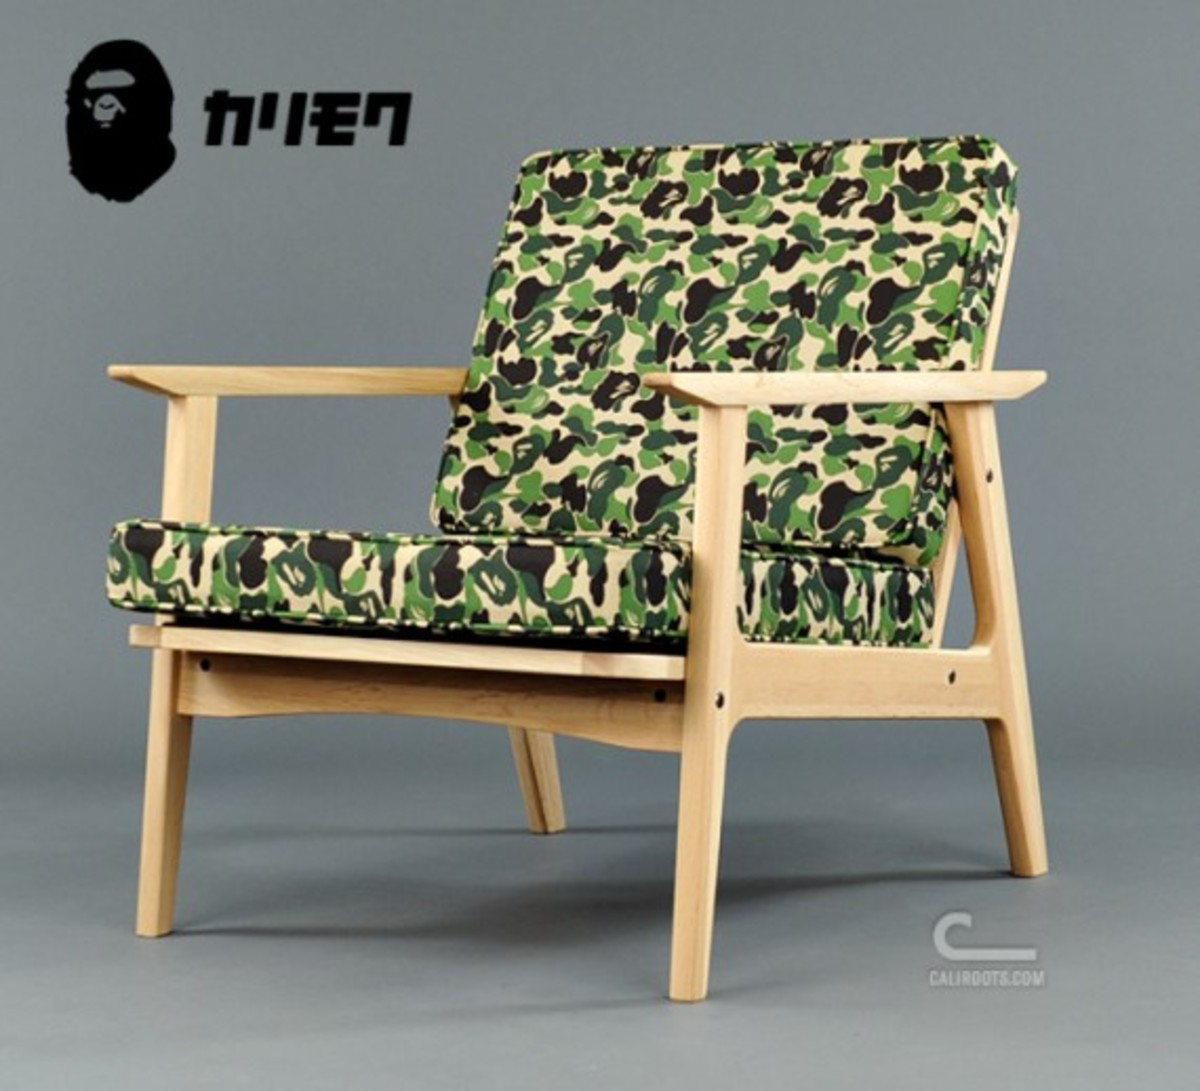 a-bathing-ape-medicom-toy-karimoku-bape-camo-furniture-12